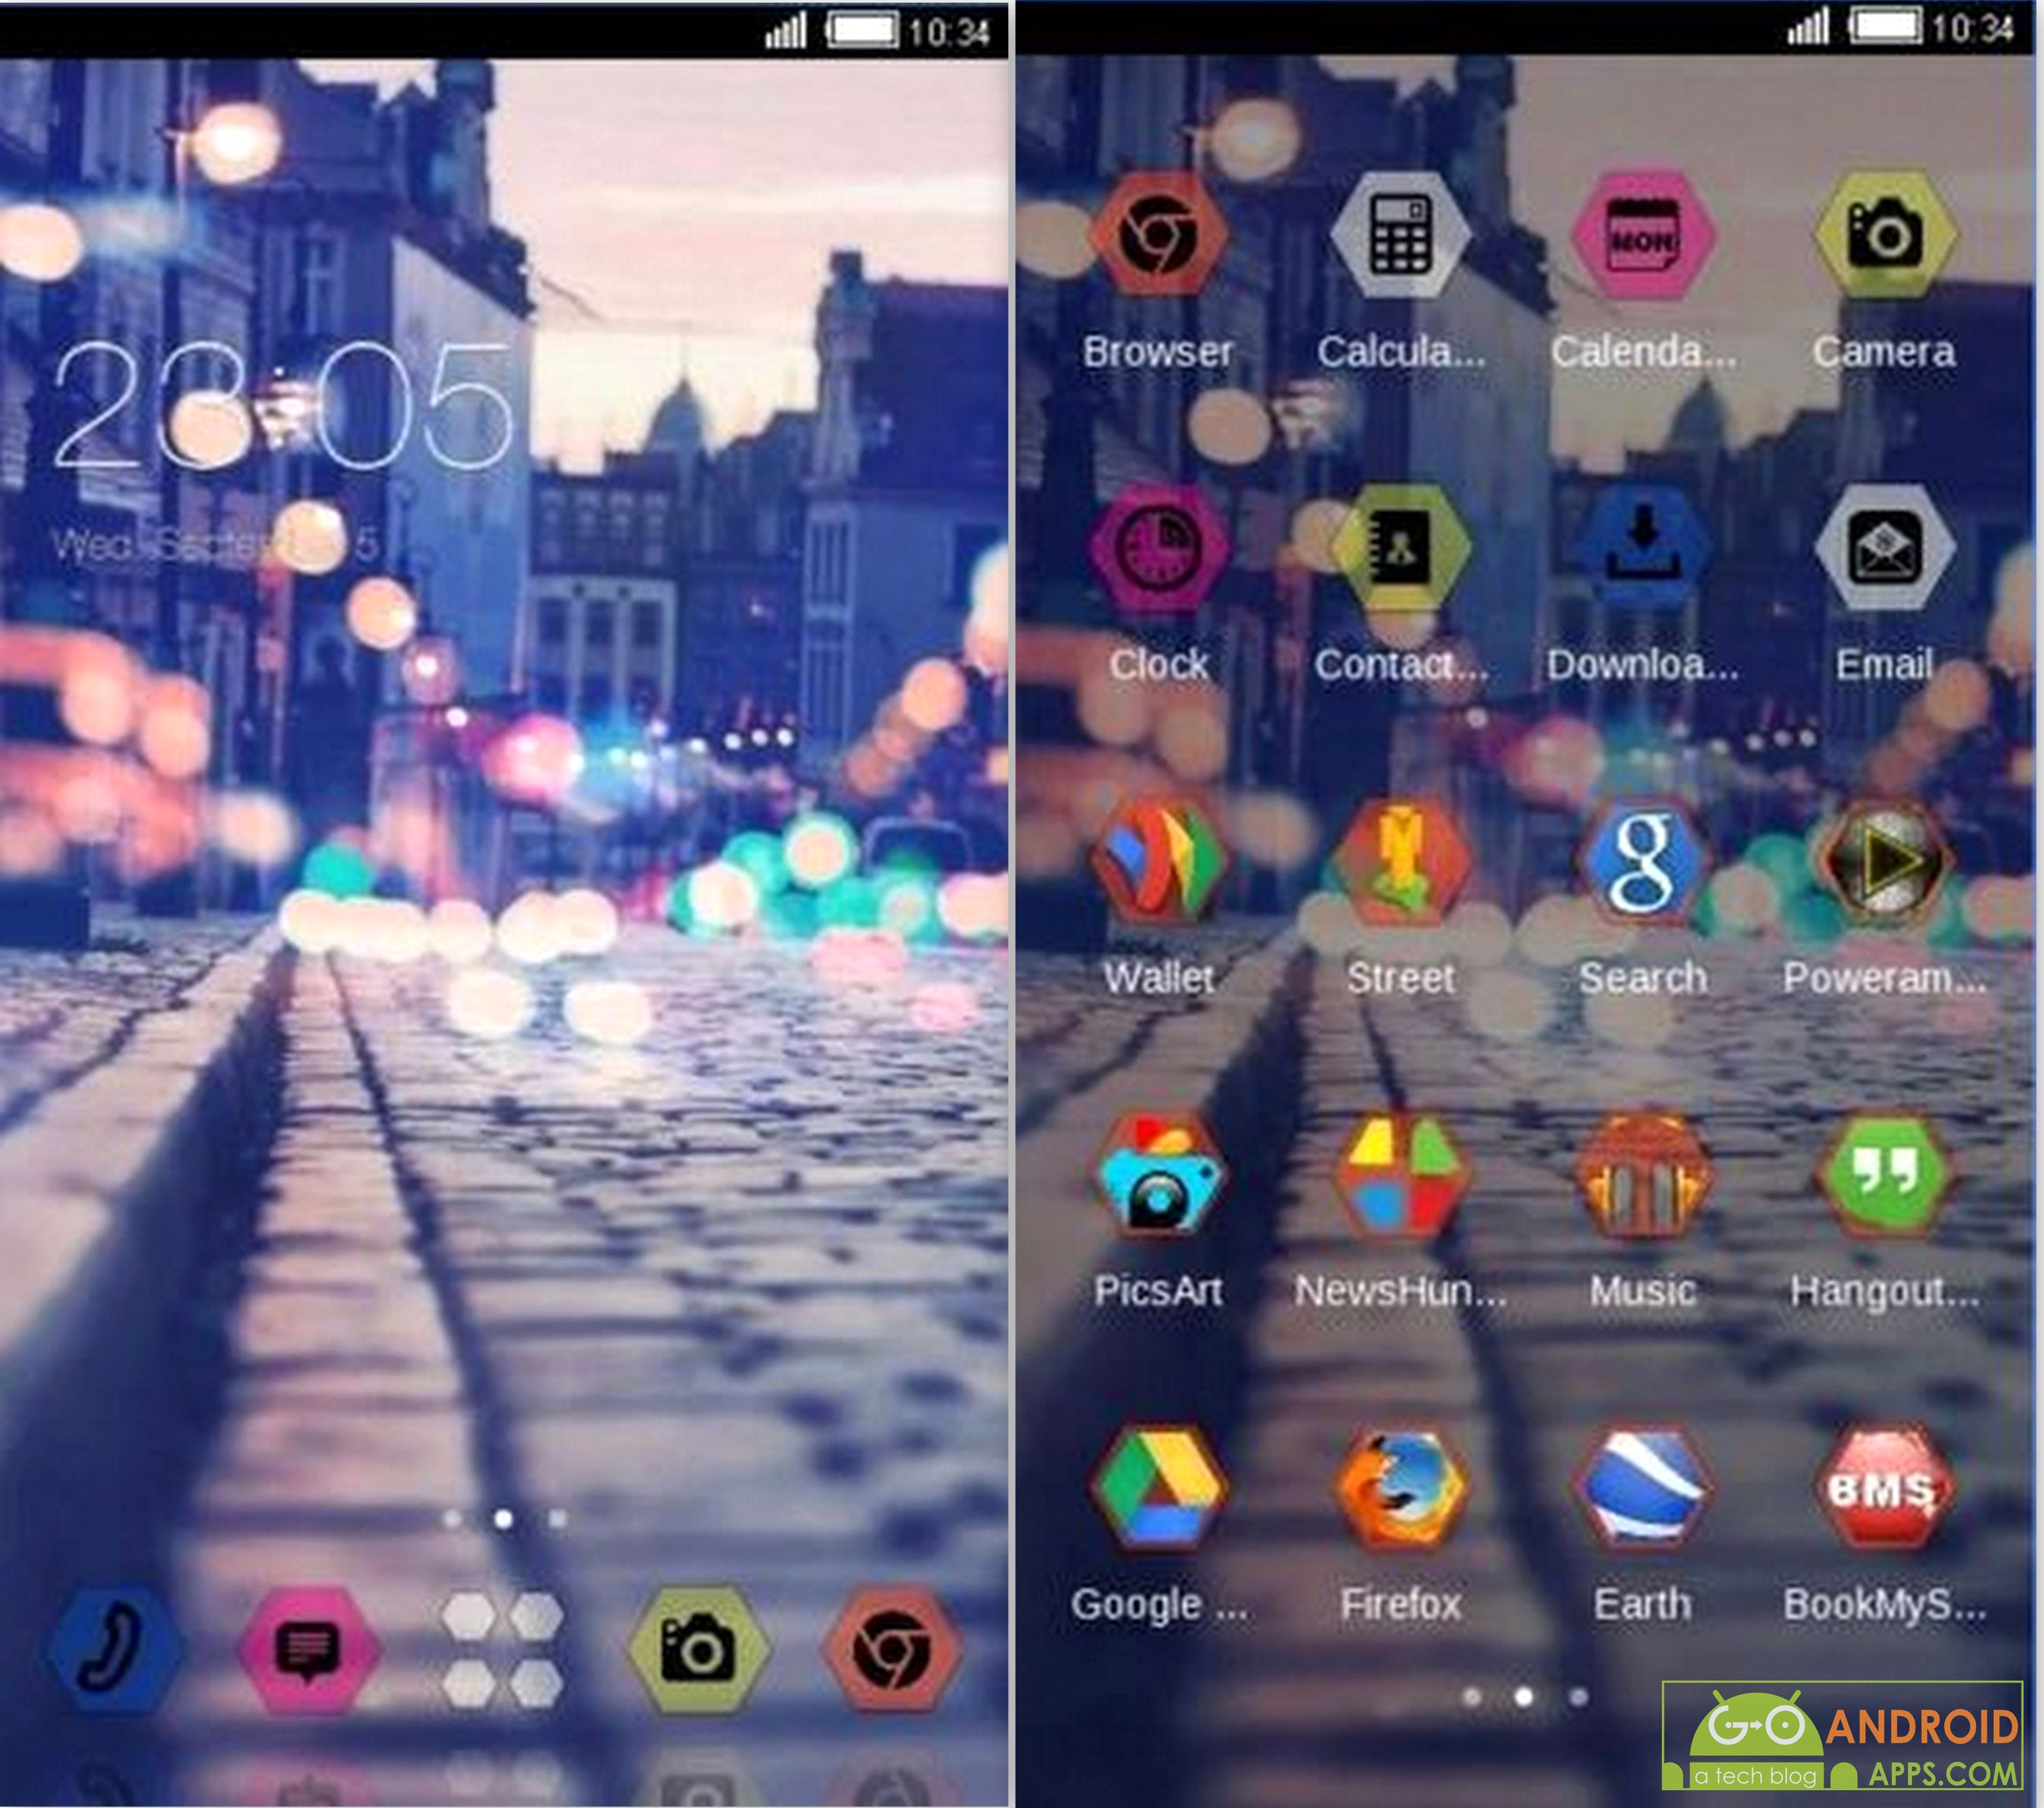 10 Best Free Android Themes of 2016 - AppInformers.com